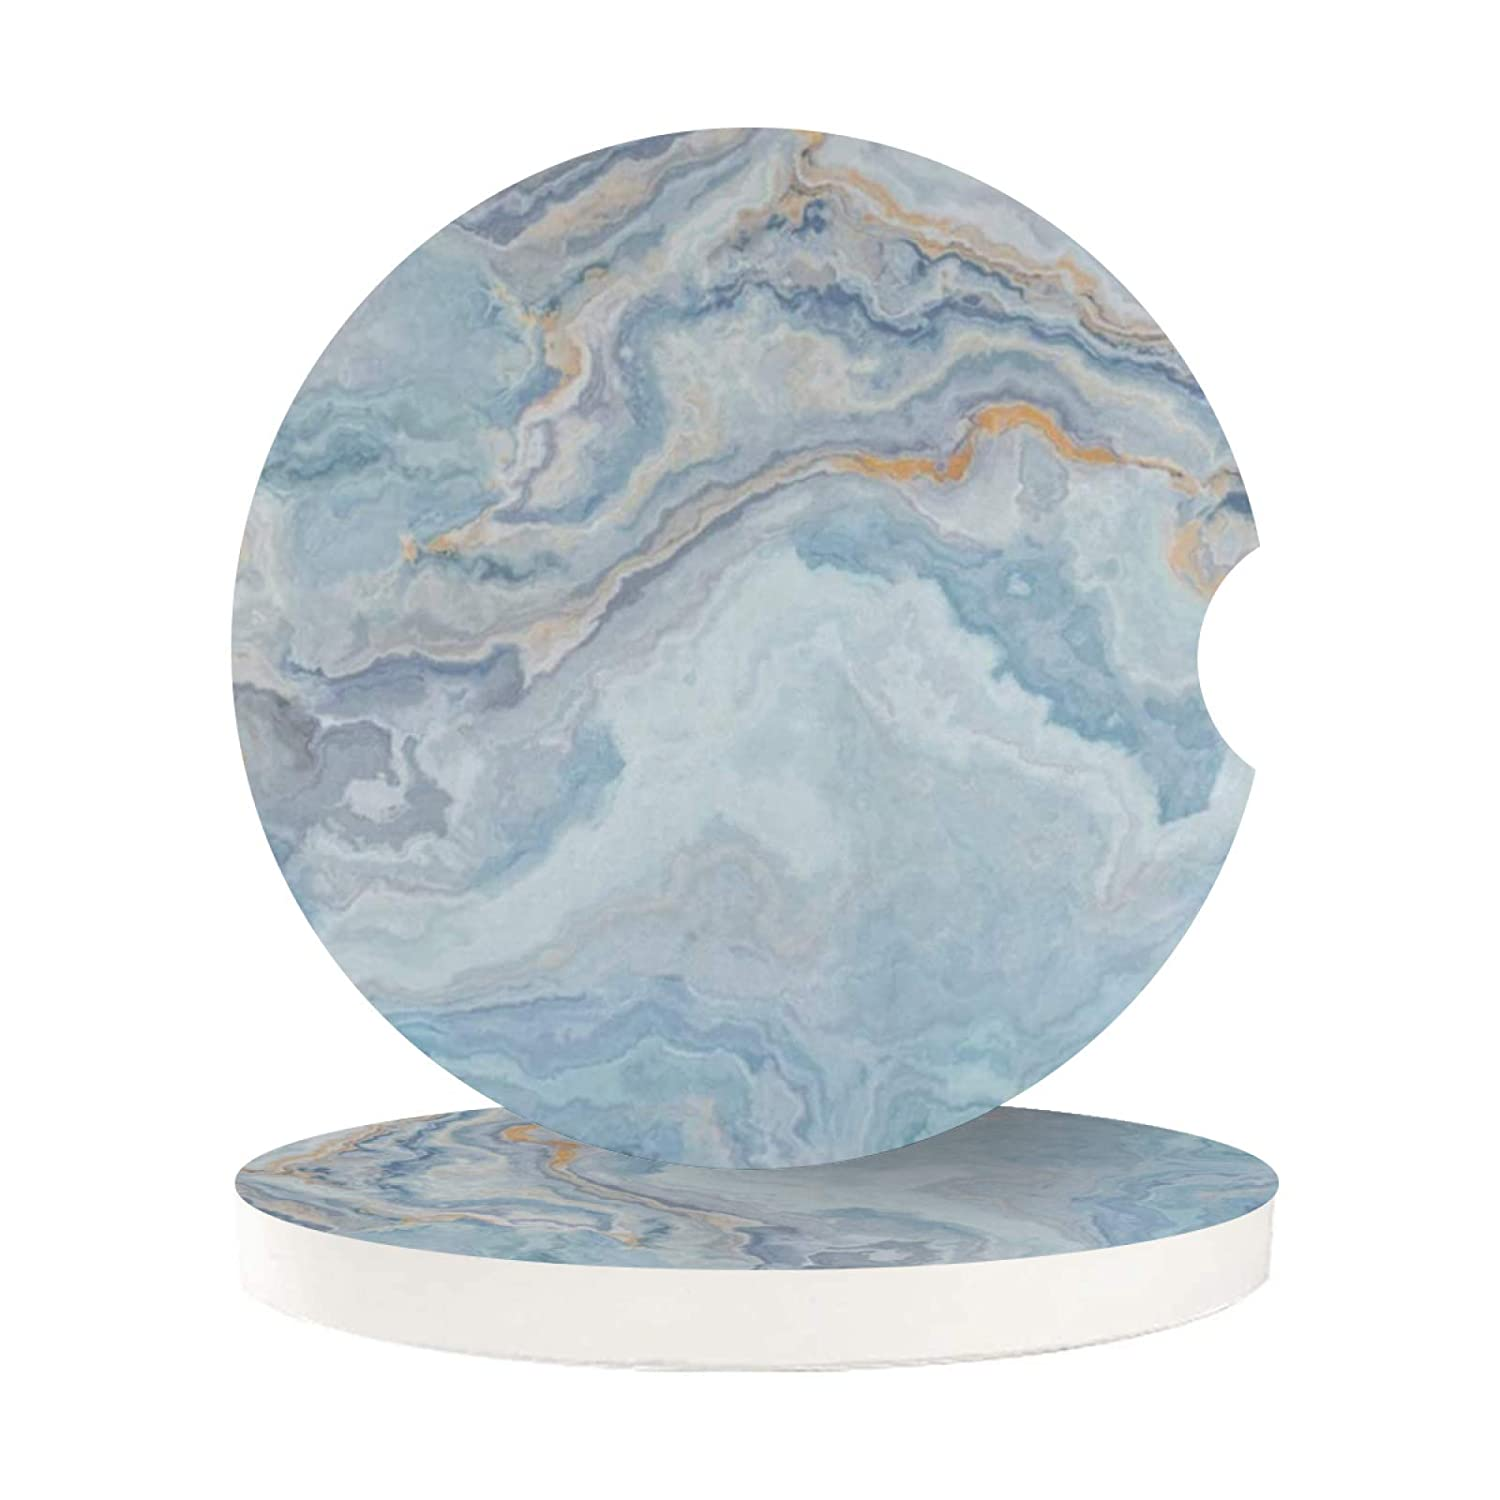 Car Coasters for Cup Holders Insert 2 Pack Light Blue Marble Unique Stone Texture Auto Cupholder Coaster for Your Car Womens Mens Girls Drinks Absorbent Cork Wood Beverage Coasters Set Round